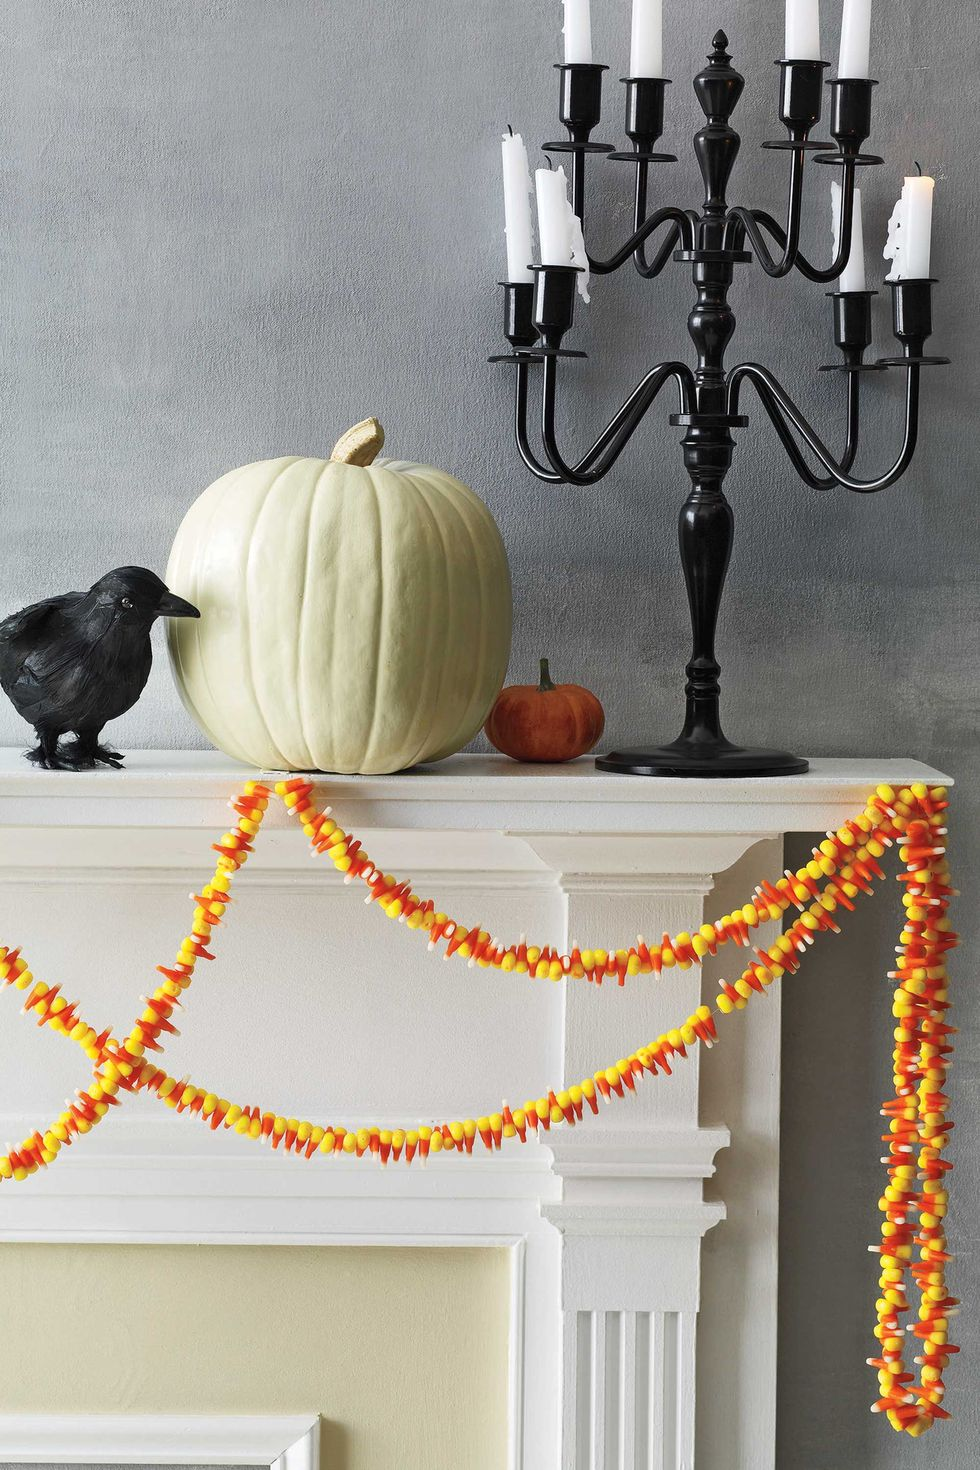 Candy Corn Garland: These 30 DIY Halloween Decorations That Are Wickedly Creative will save you money and allow your creativity to flourish